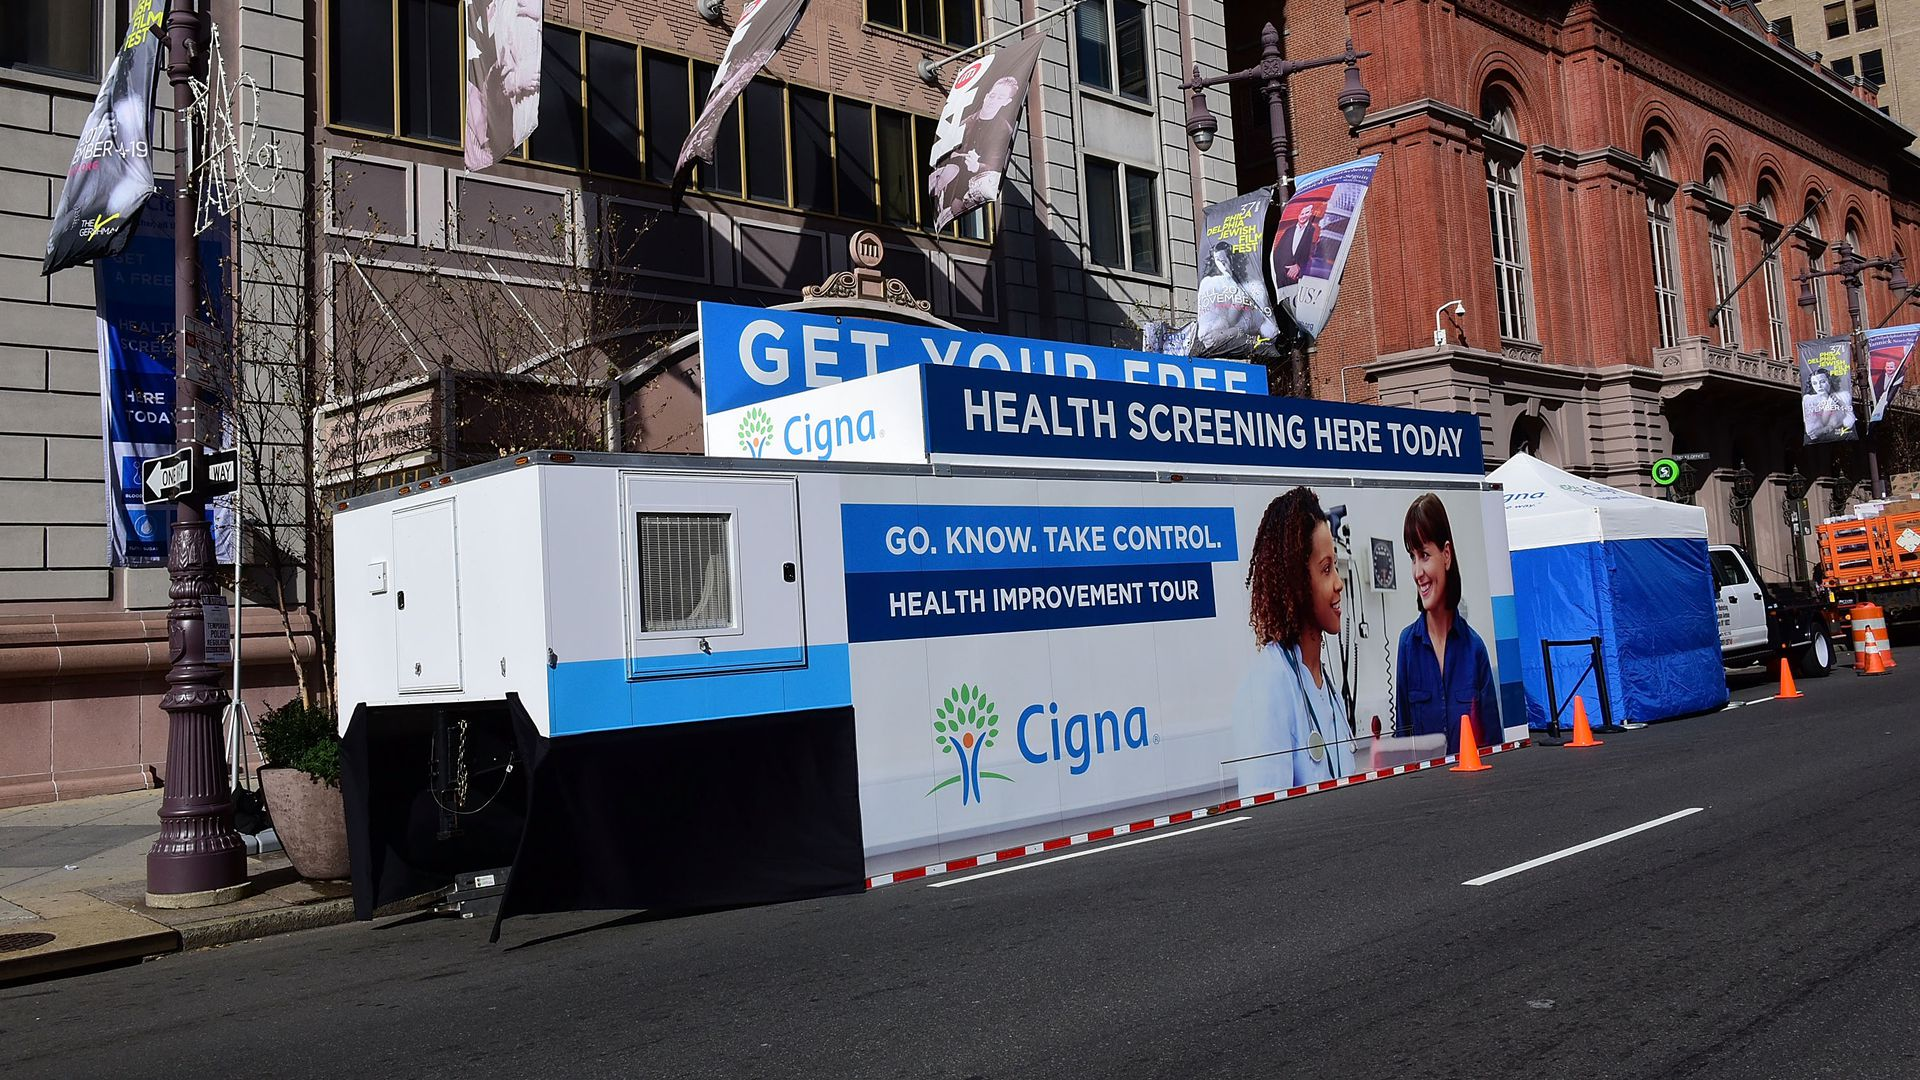 A Cigna mobile unit sets up for health screenings.